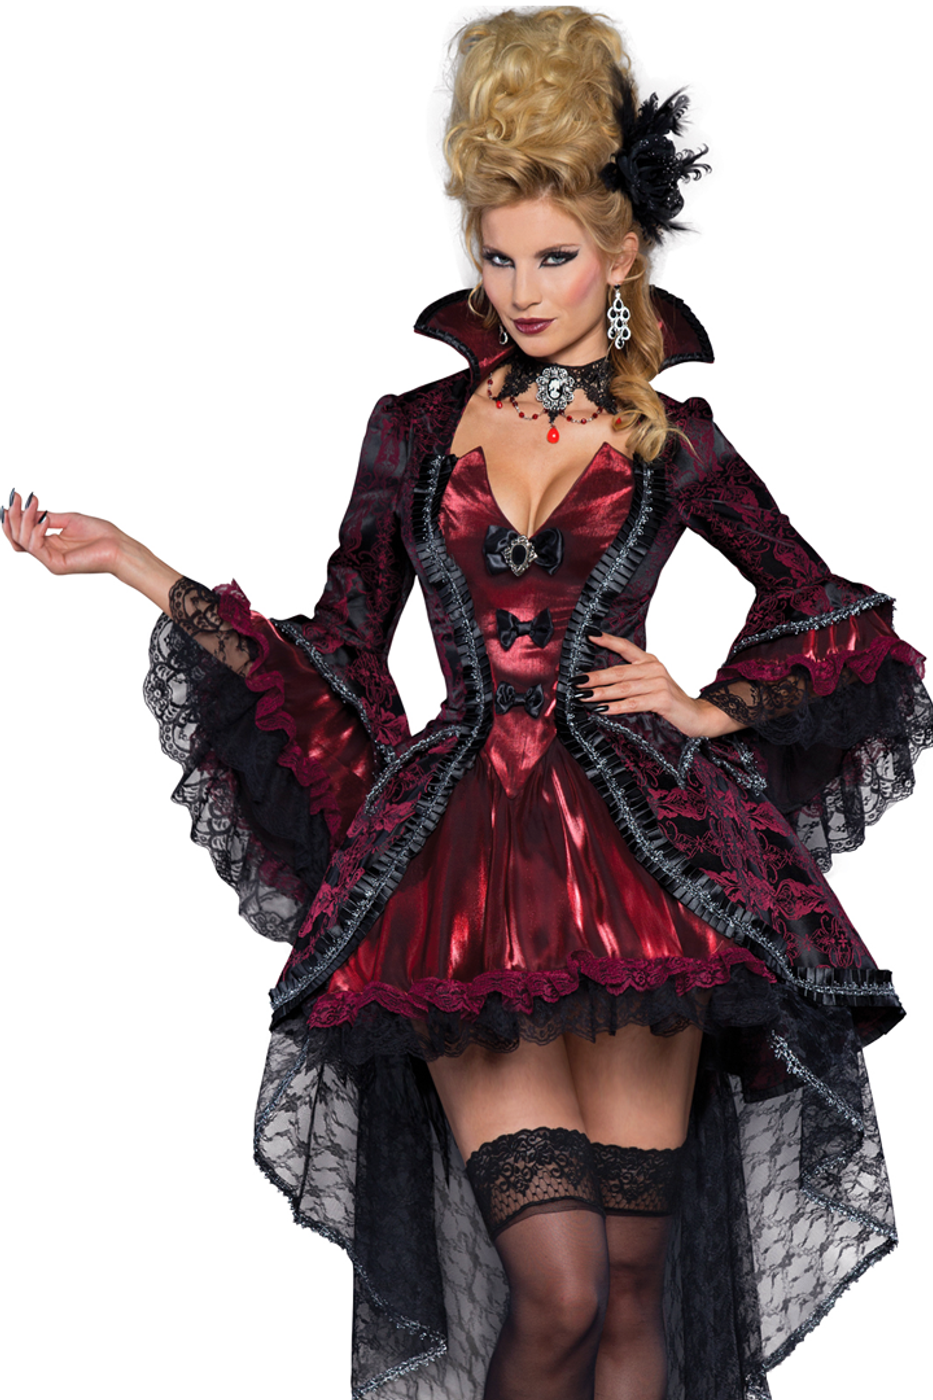 a5a0a82b6ea Shop this women s deluxe sexy vampire costume featuring a theatrical  Victorian vampire costume with floral brocade